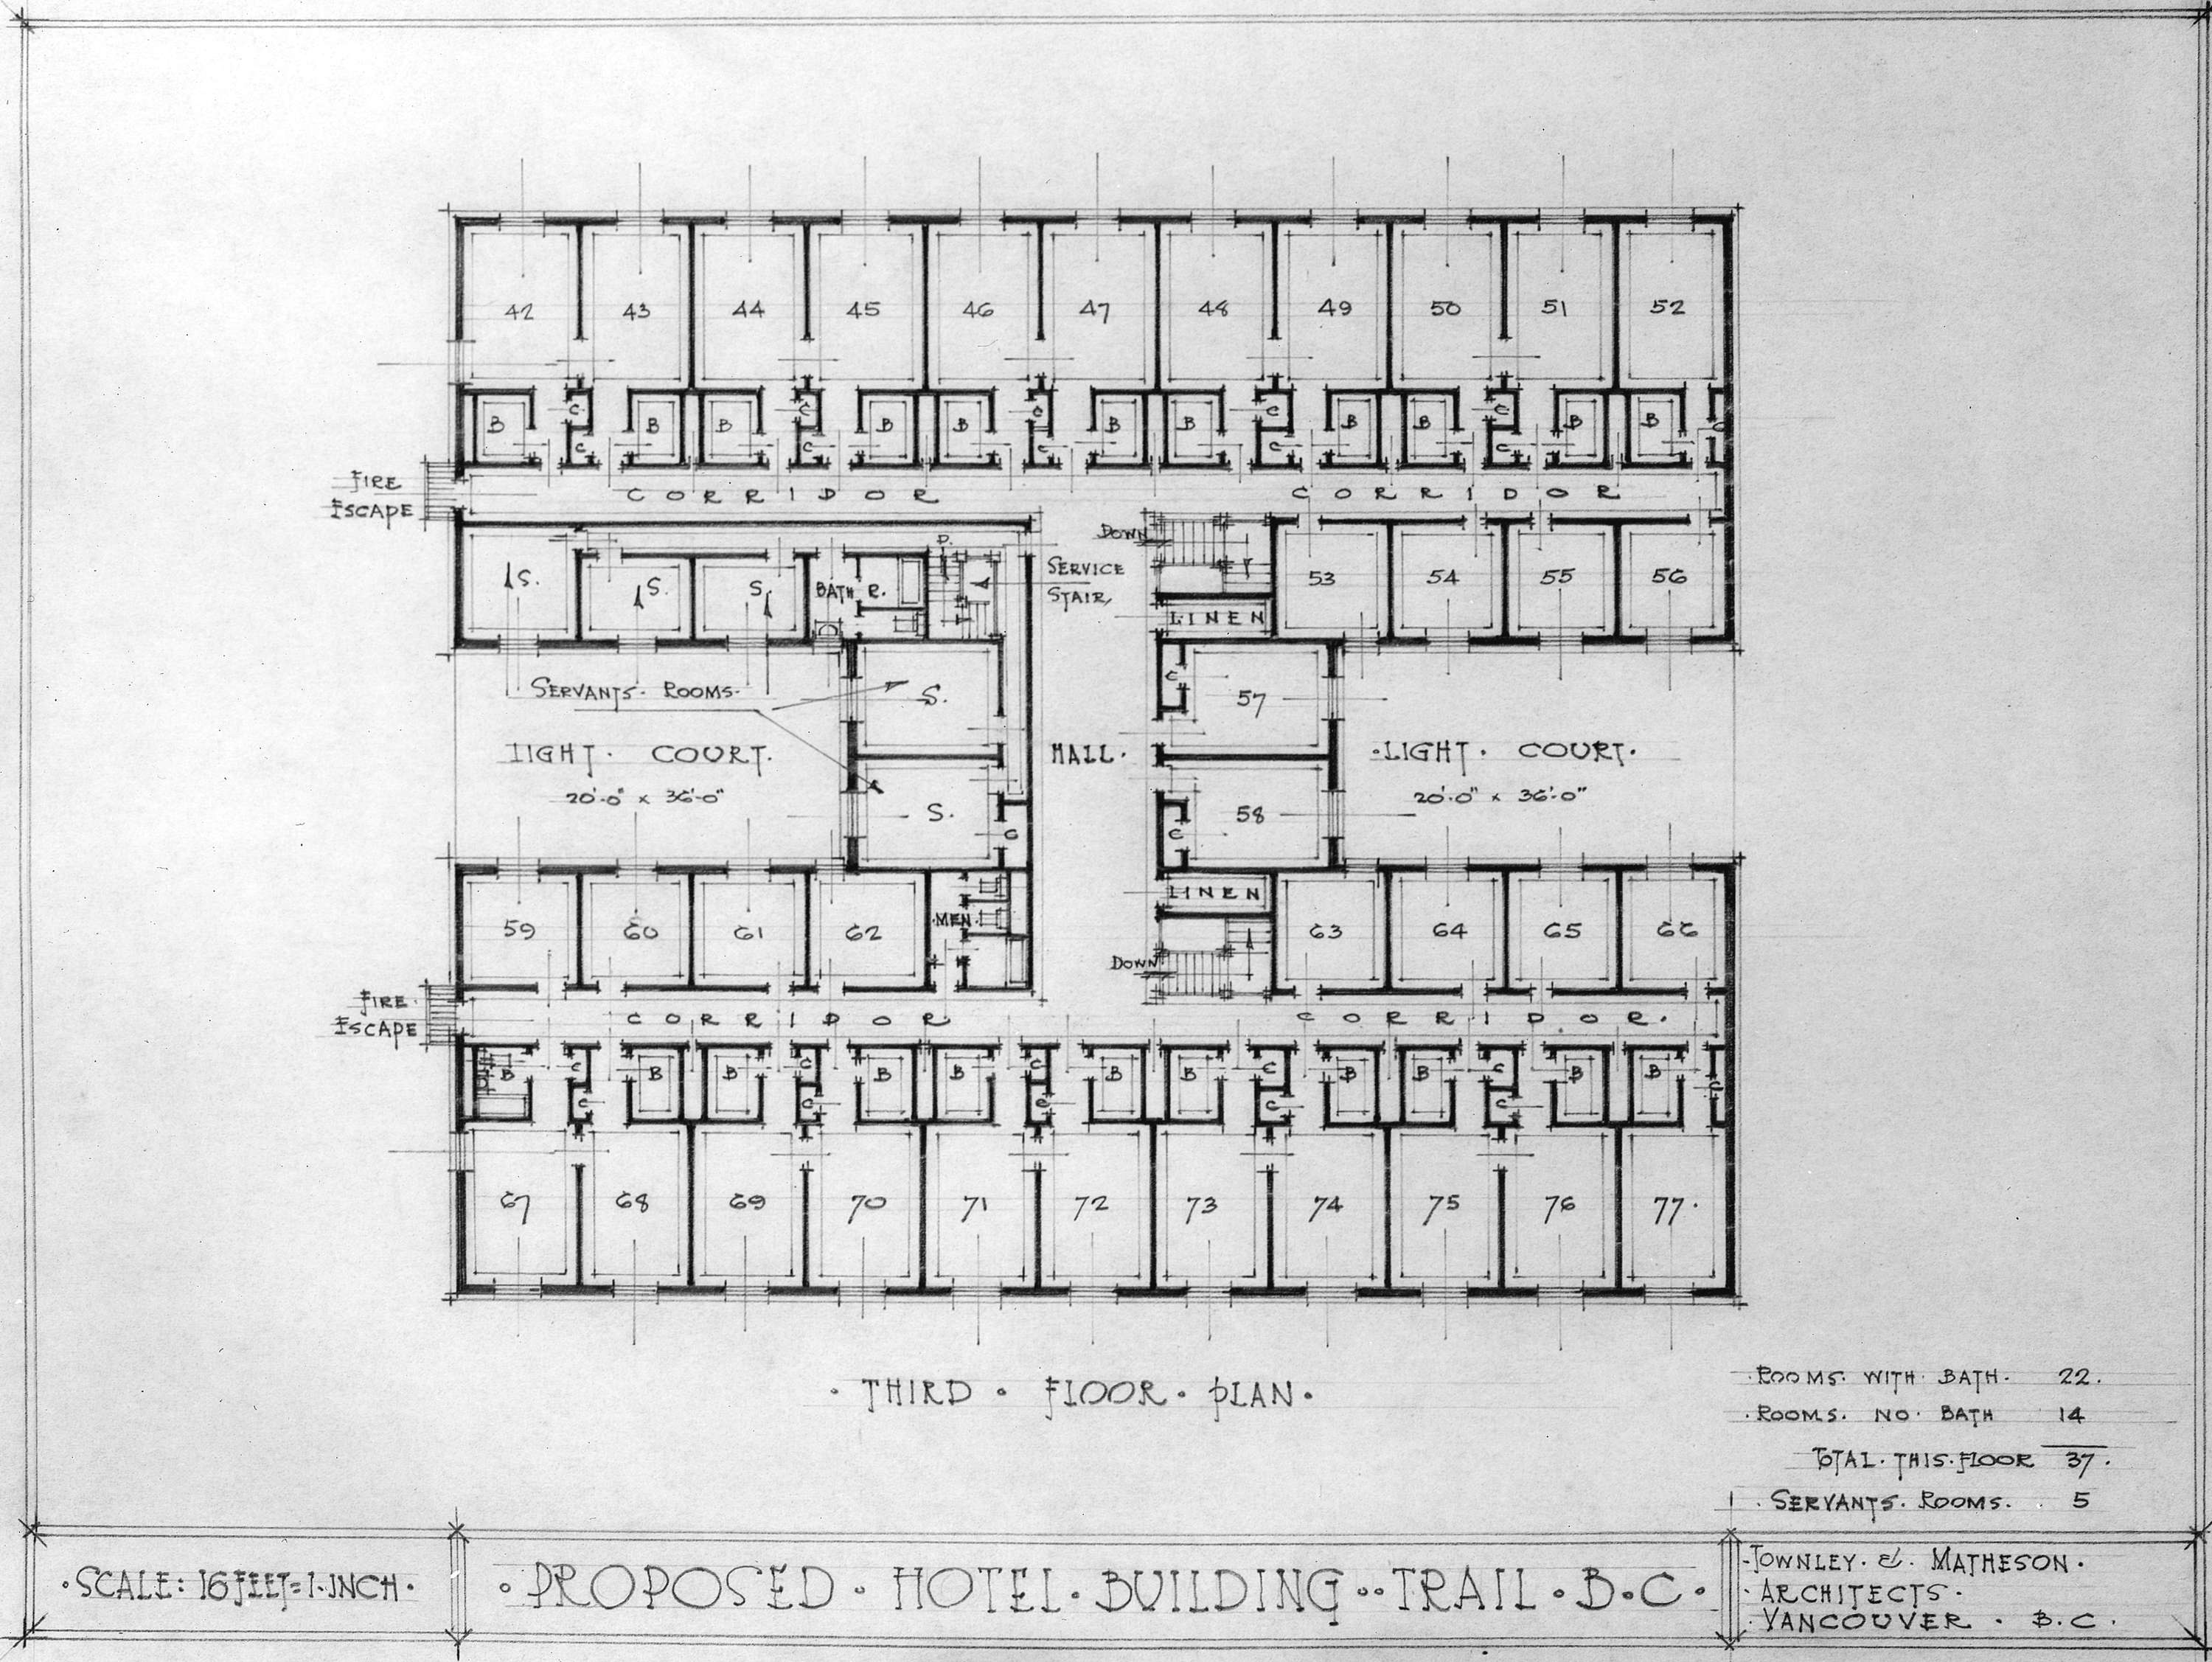 proposed hotel building trail b c third floor plan